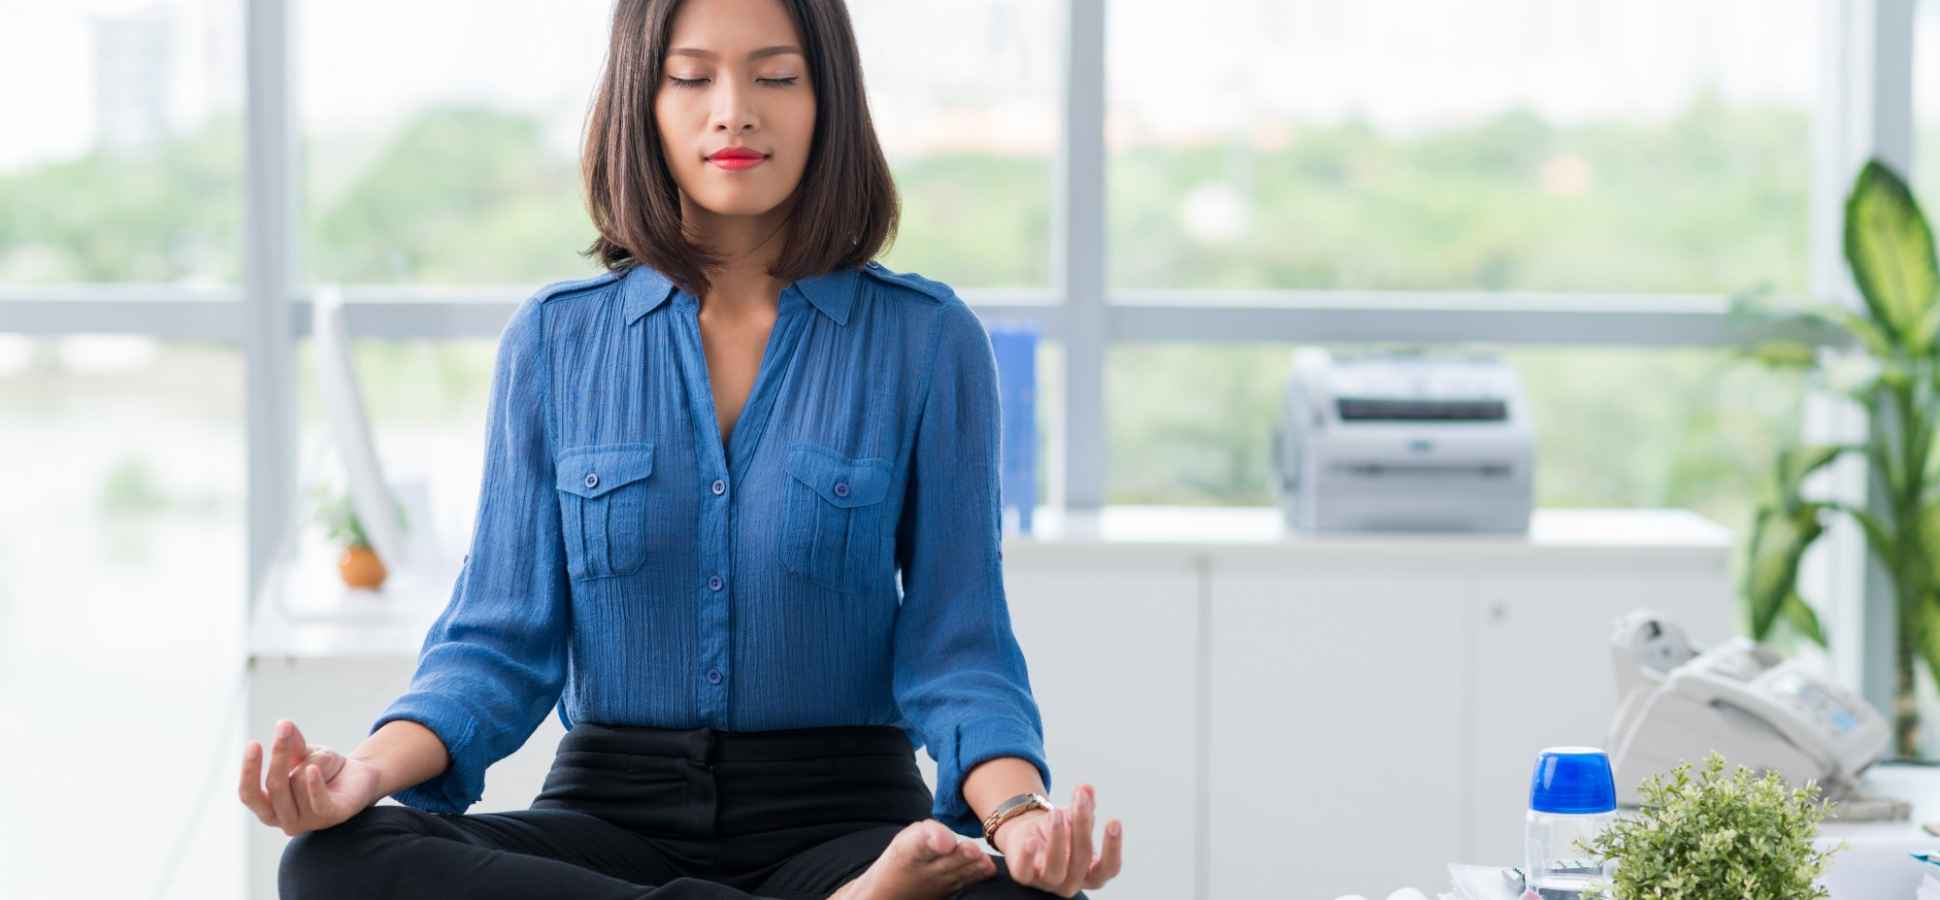 Mindfulness and Happiness in the Workplace | Inc.com